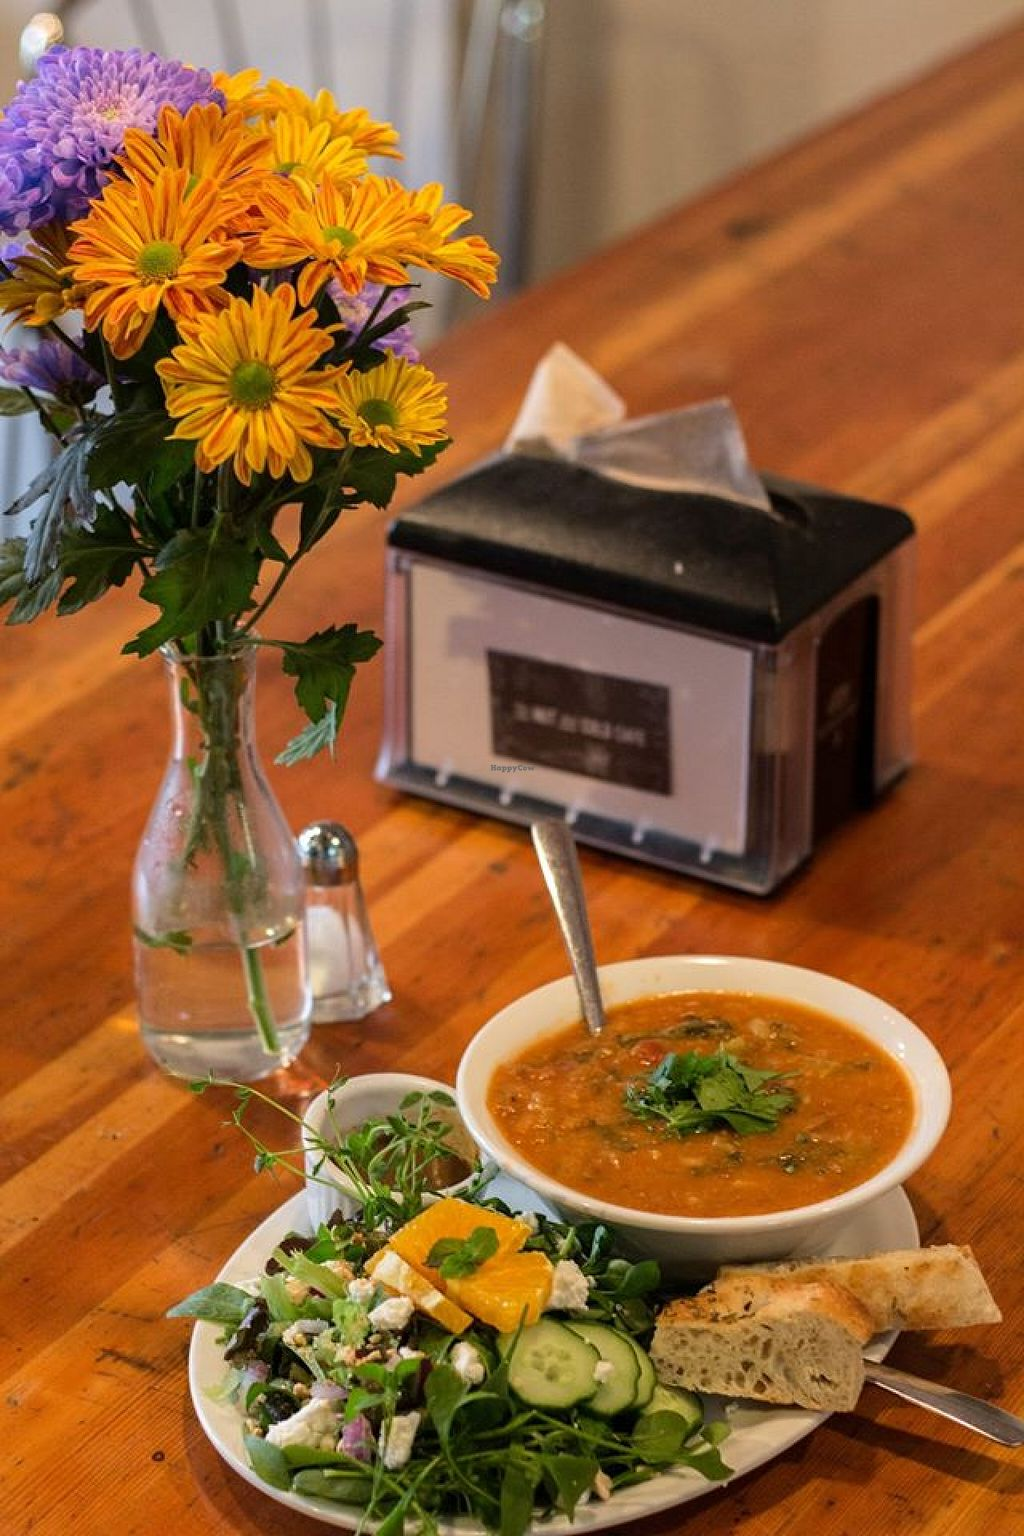 """Photo of The Hot & Cold Cafe   by <a href=""""/members/profile/SarahRoseBirge"""">SarahRoseBirge</a> <br/>Delicious salads and soups made from scratch <br/> February 6, 2016  - <a href='/contact/abuse/image/69223/135240'>Report</a>"""